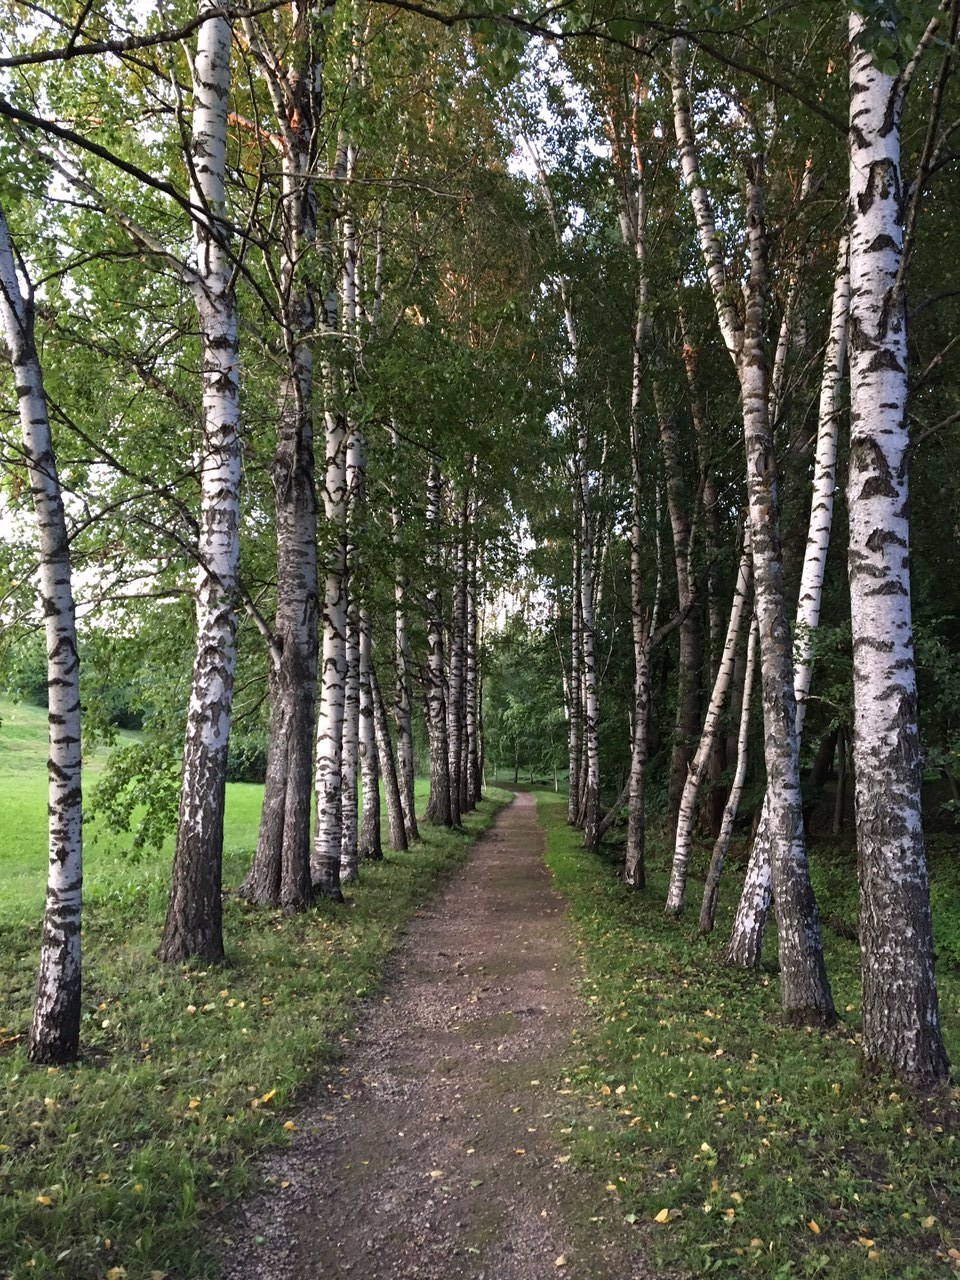 The birch trees alley is an example of the way many Russian noble manor houses and parks were built according to the principles of English garden. It was meant to look like it was all nature's work, but in fact was planned with great care.